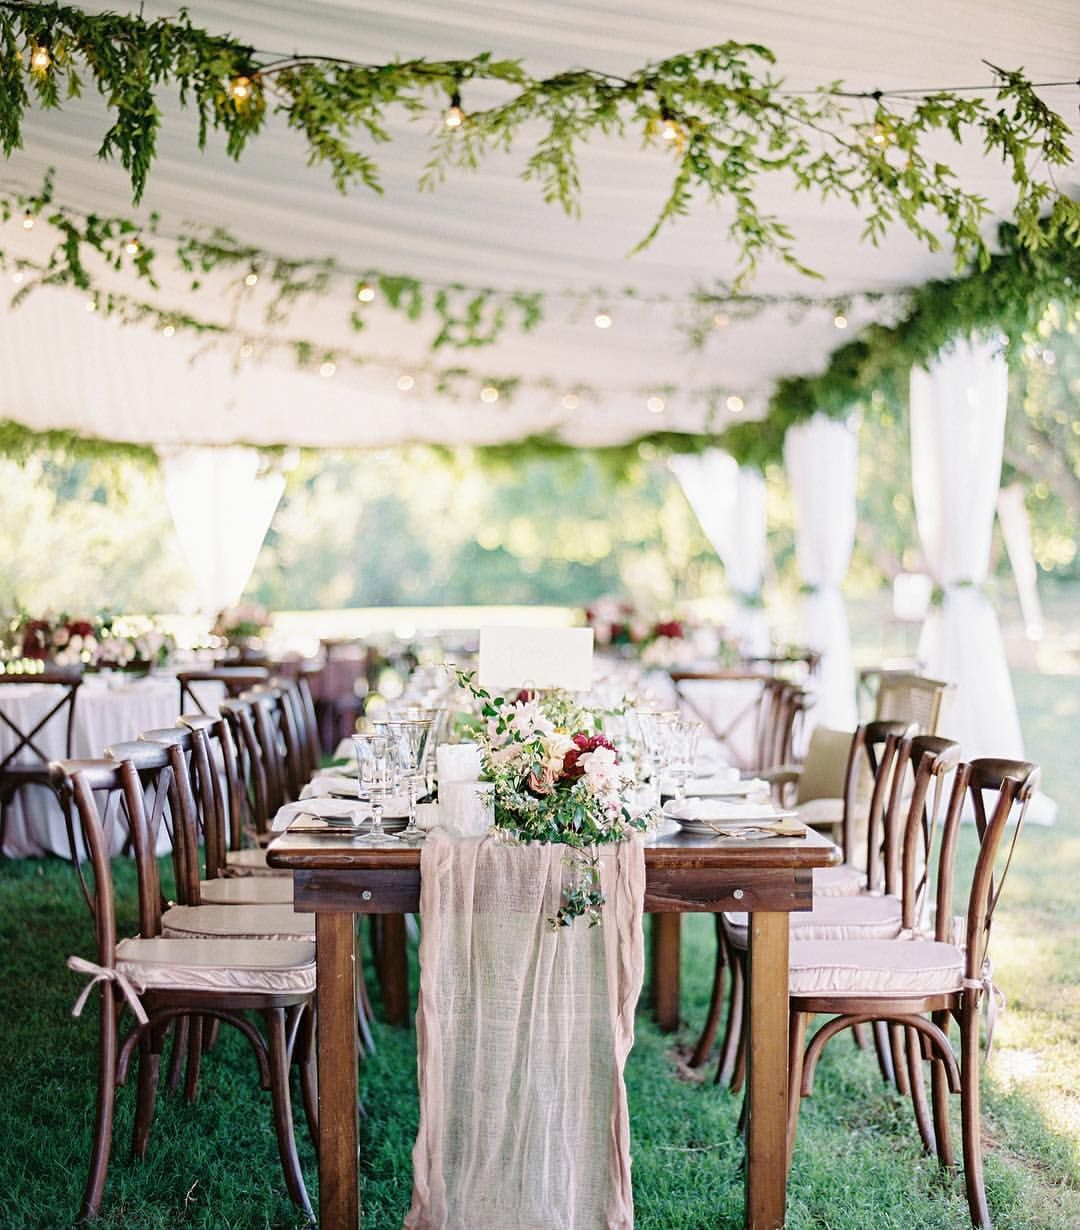 Outdoor Rustic Wedding Ideas: Outdoor Wedding Decorations